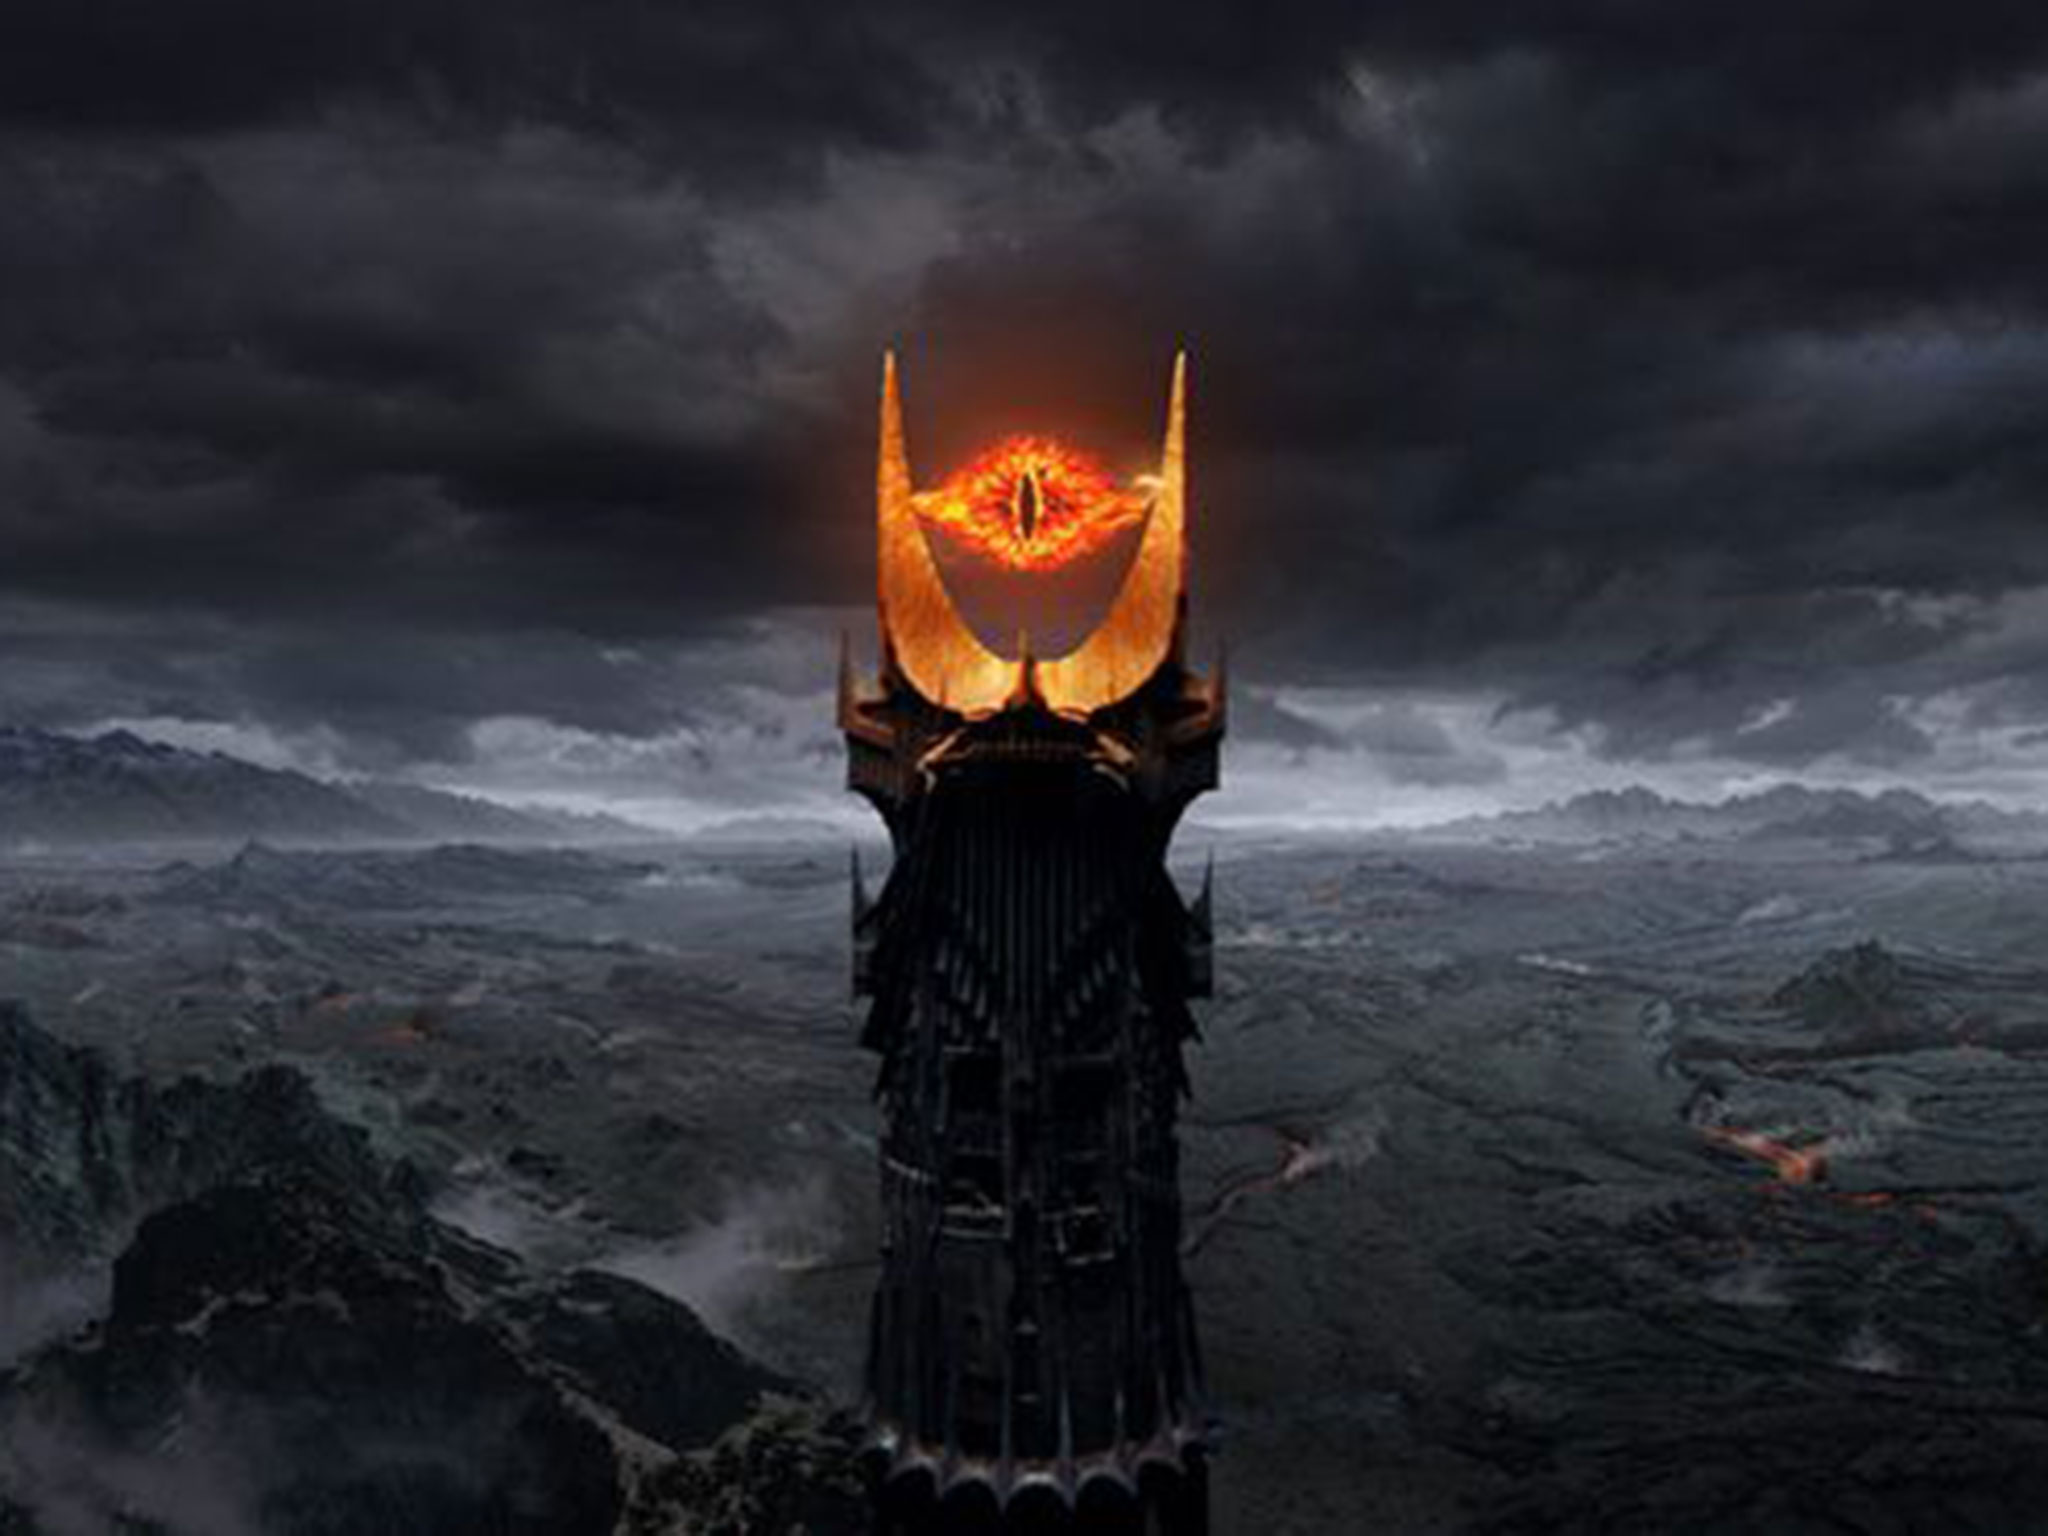 Lord of the Rings eye of Sauron - Ghtic.com - Blog